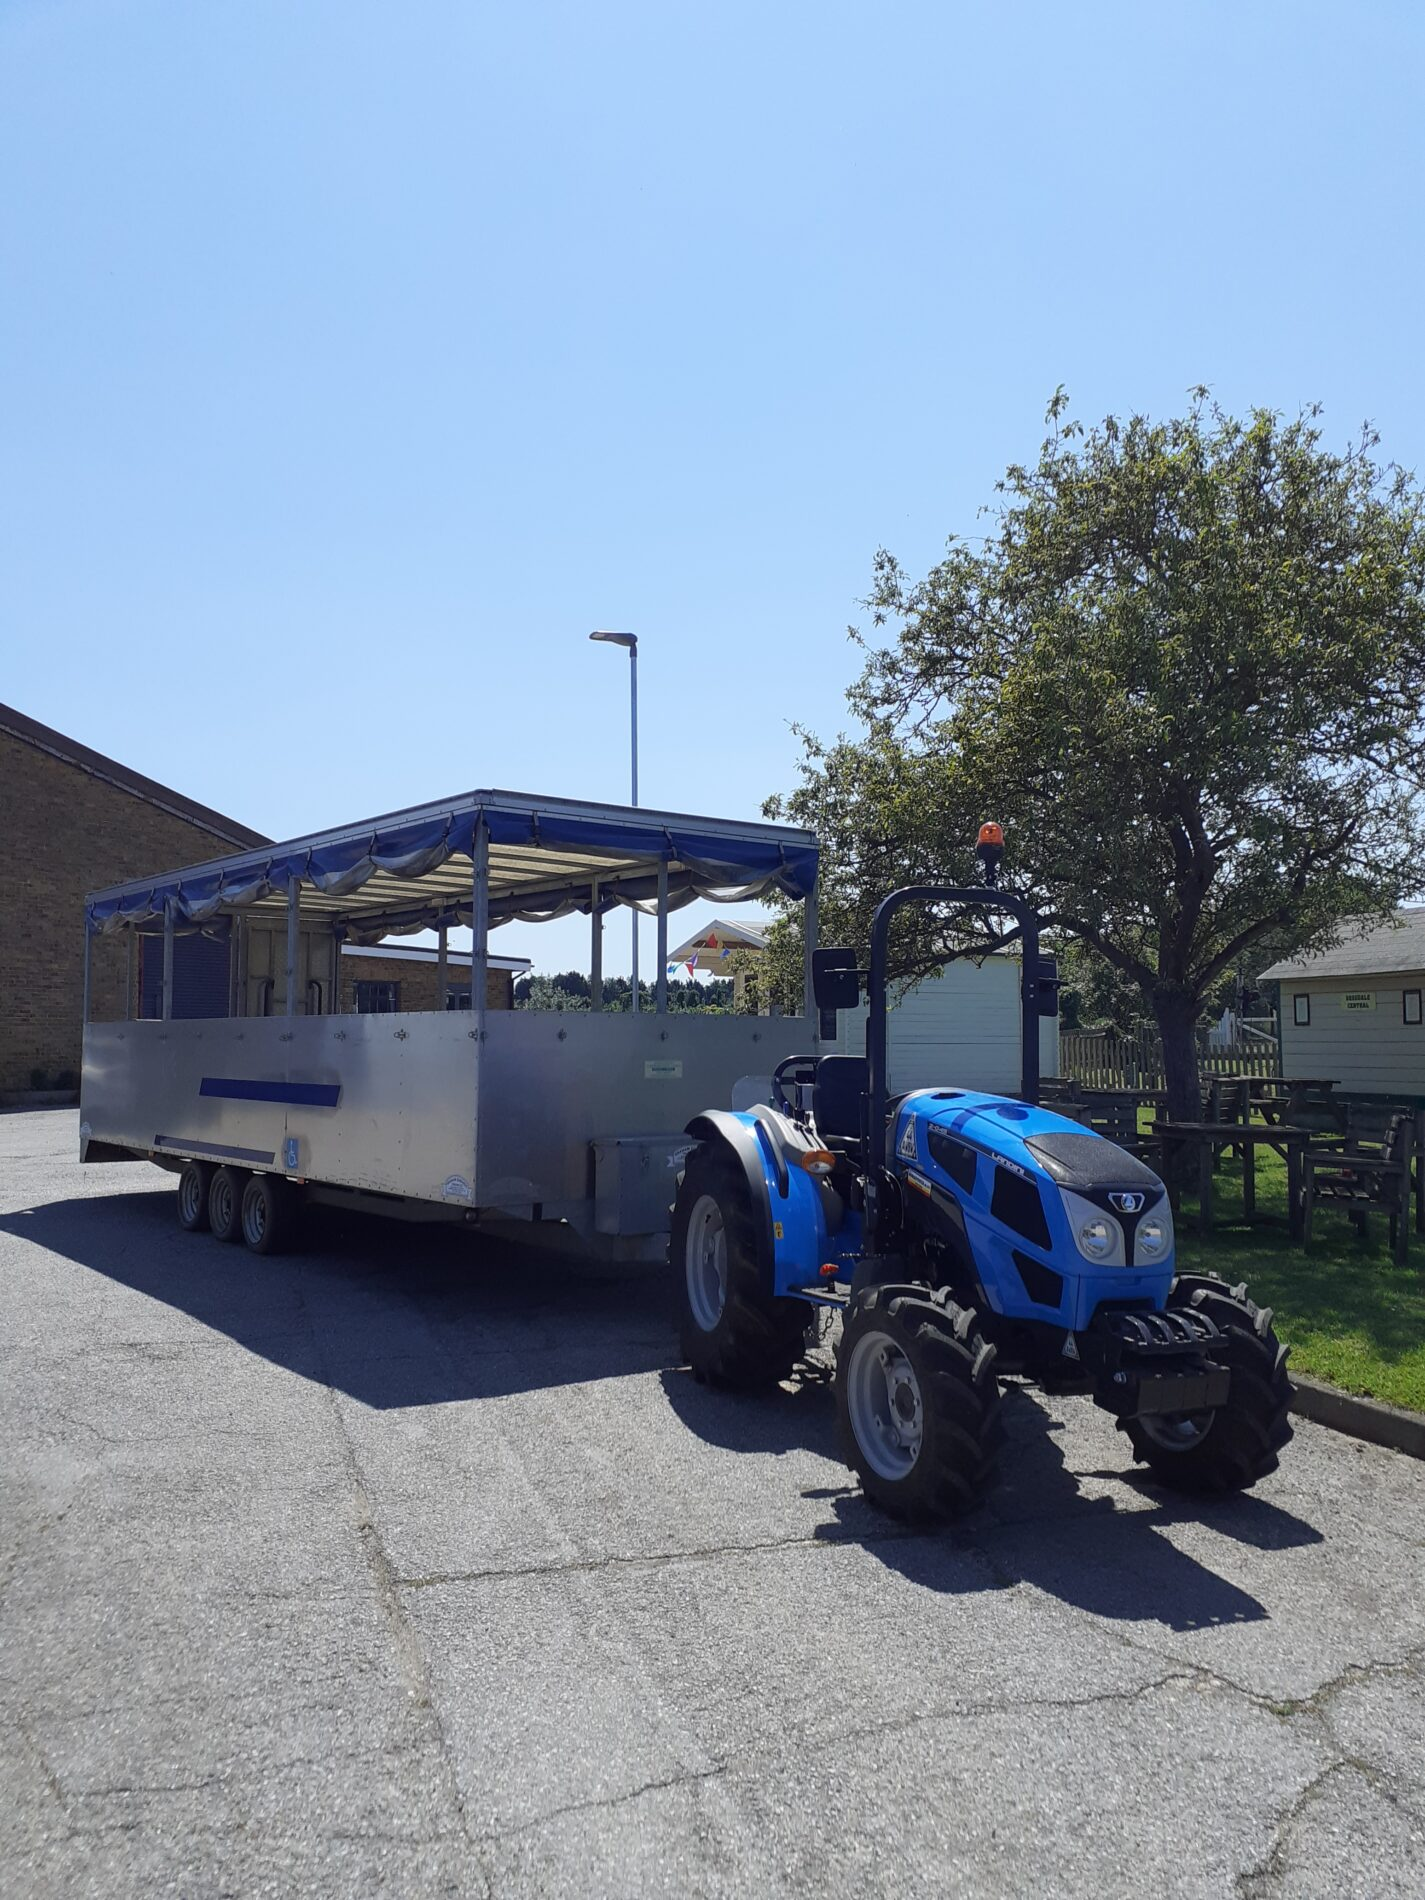 Brogdale Tractor Tours